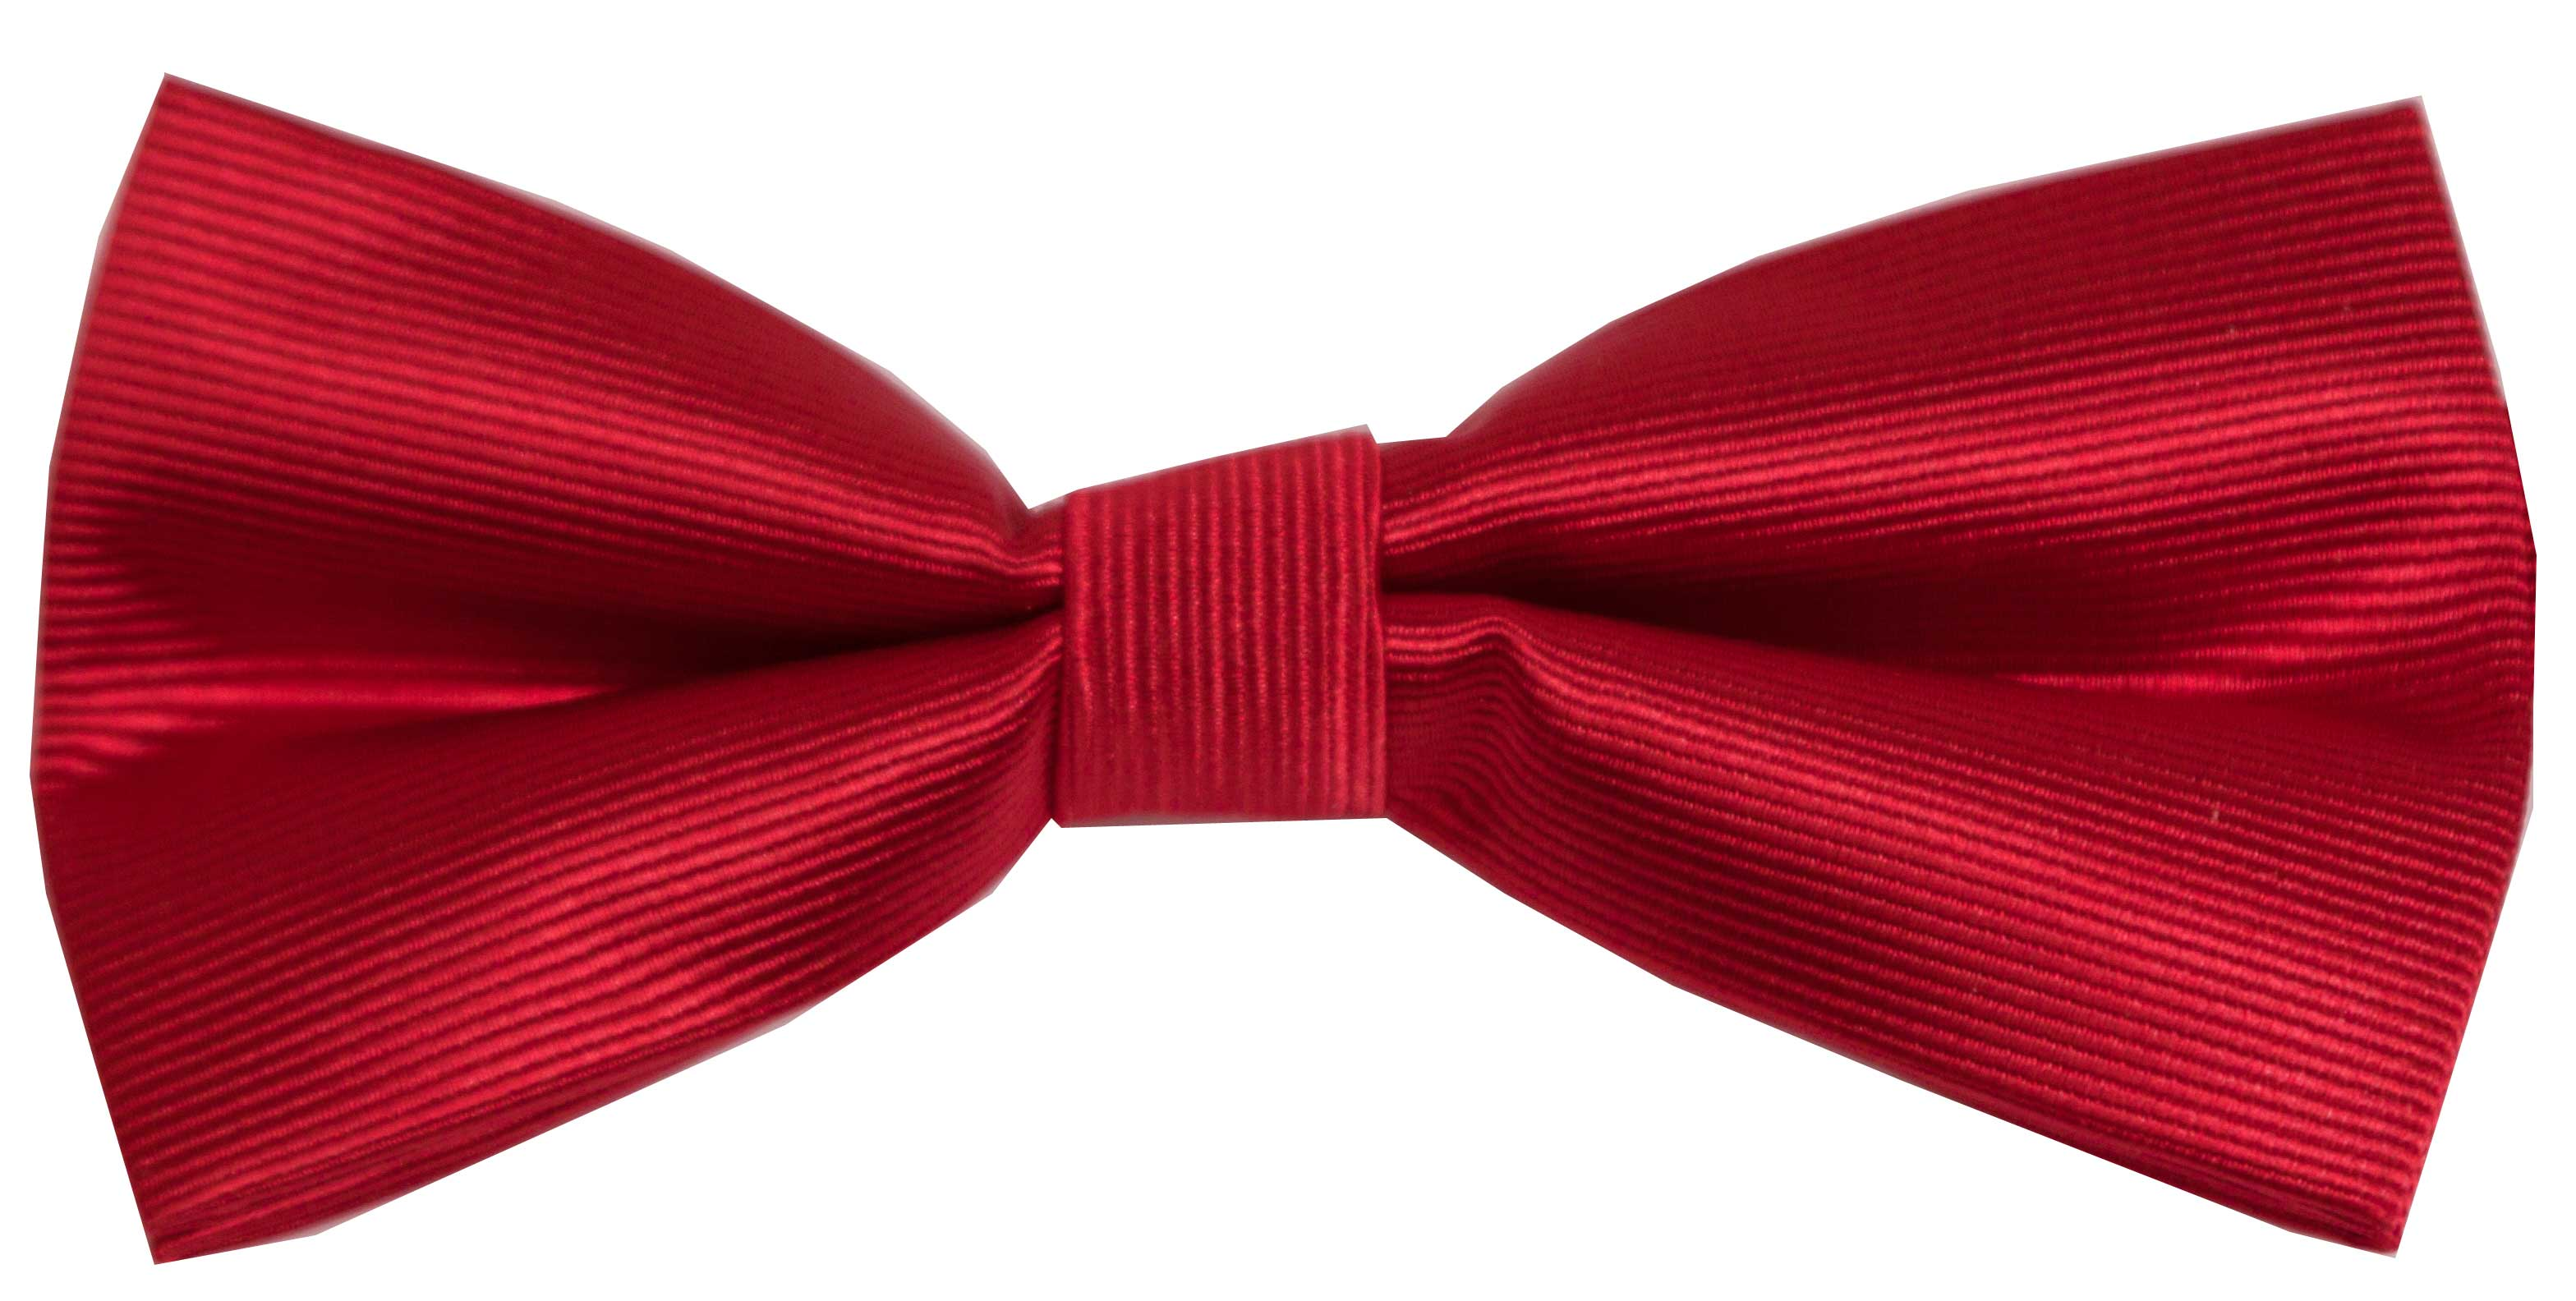 Bow tie (red)